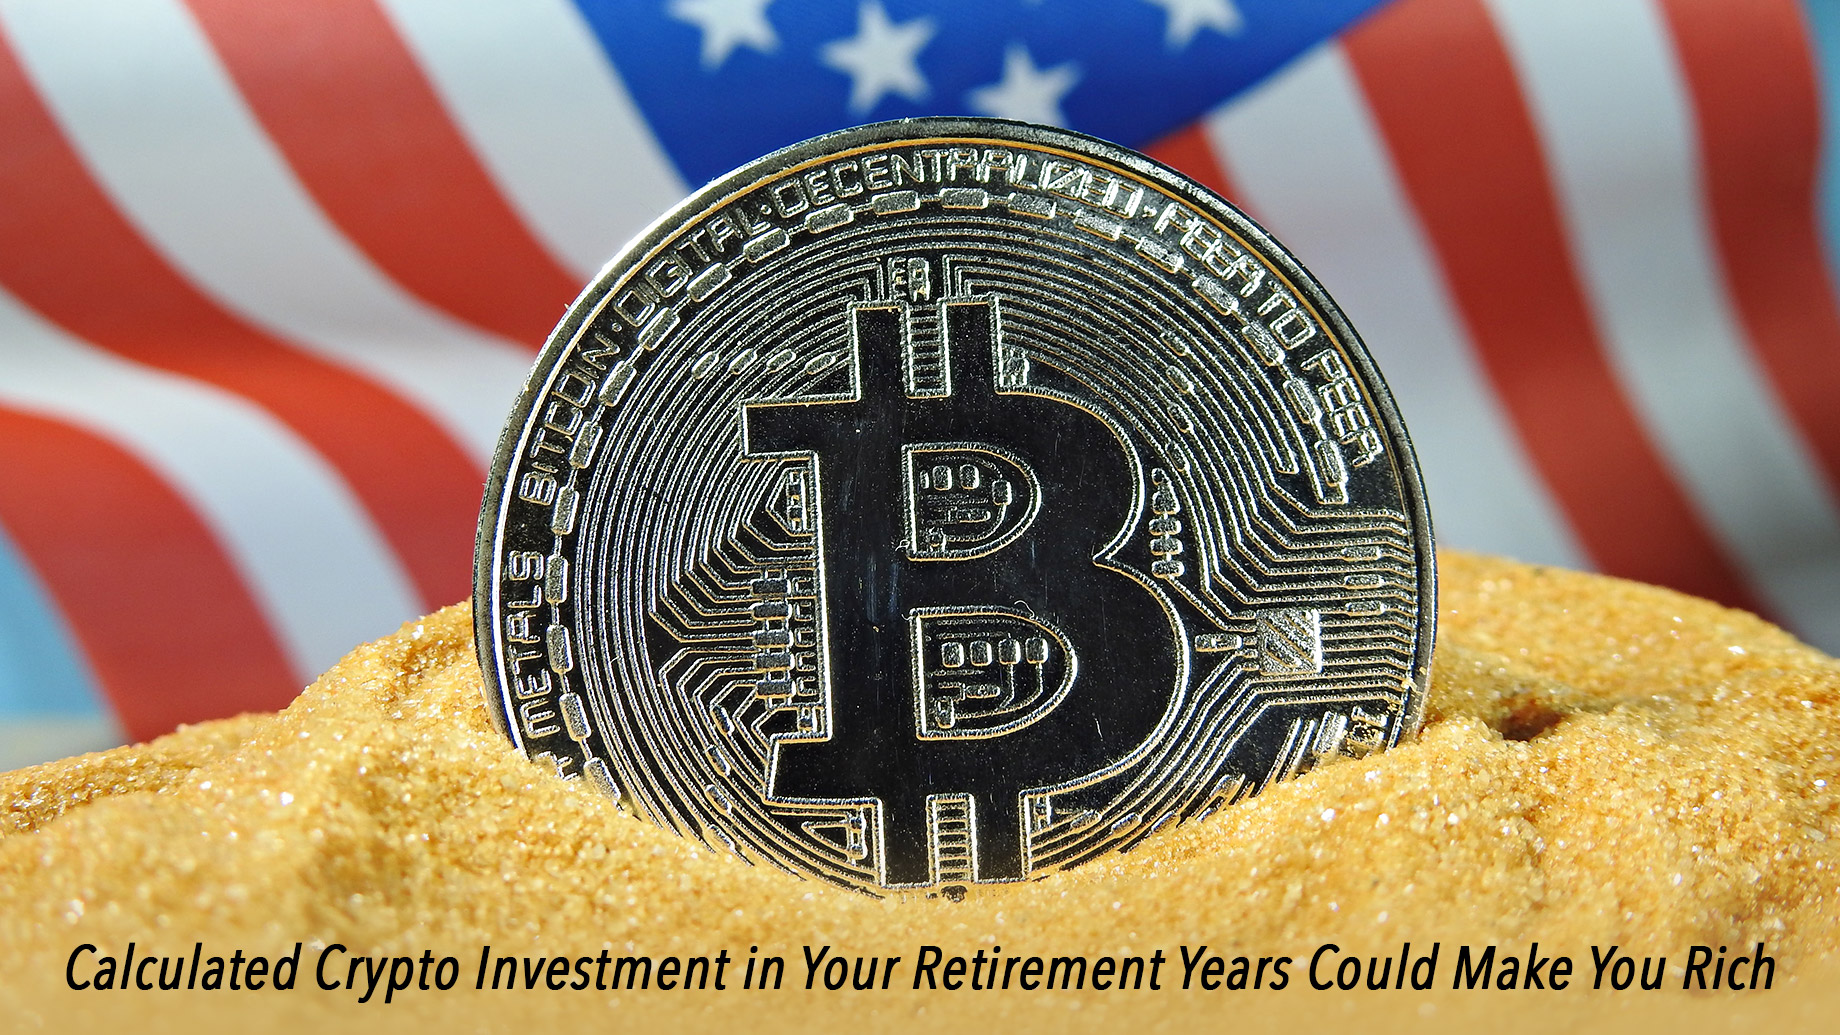 Calculated Crypto Investment in Your Retirement Years Could Make You Rich